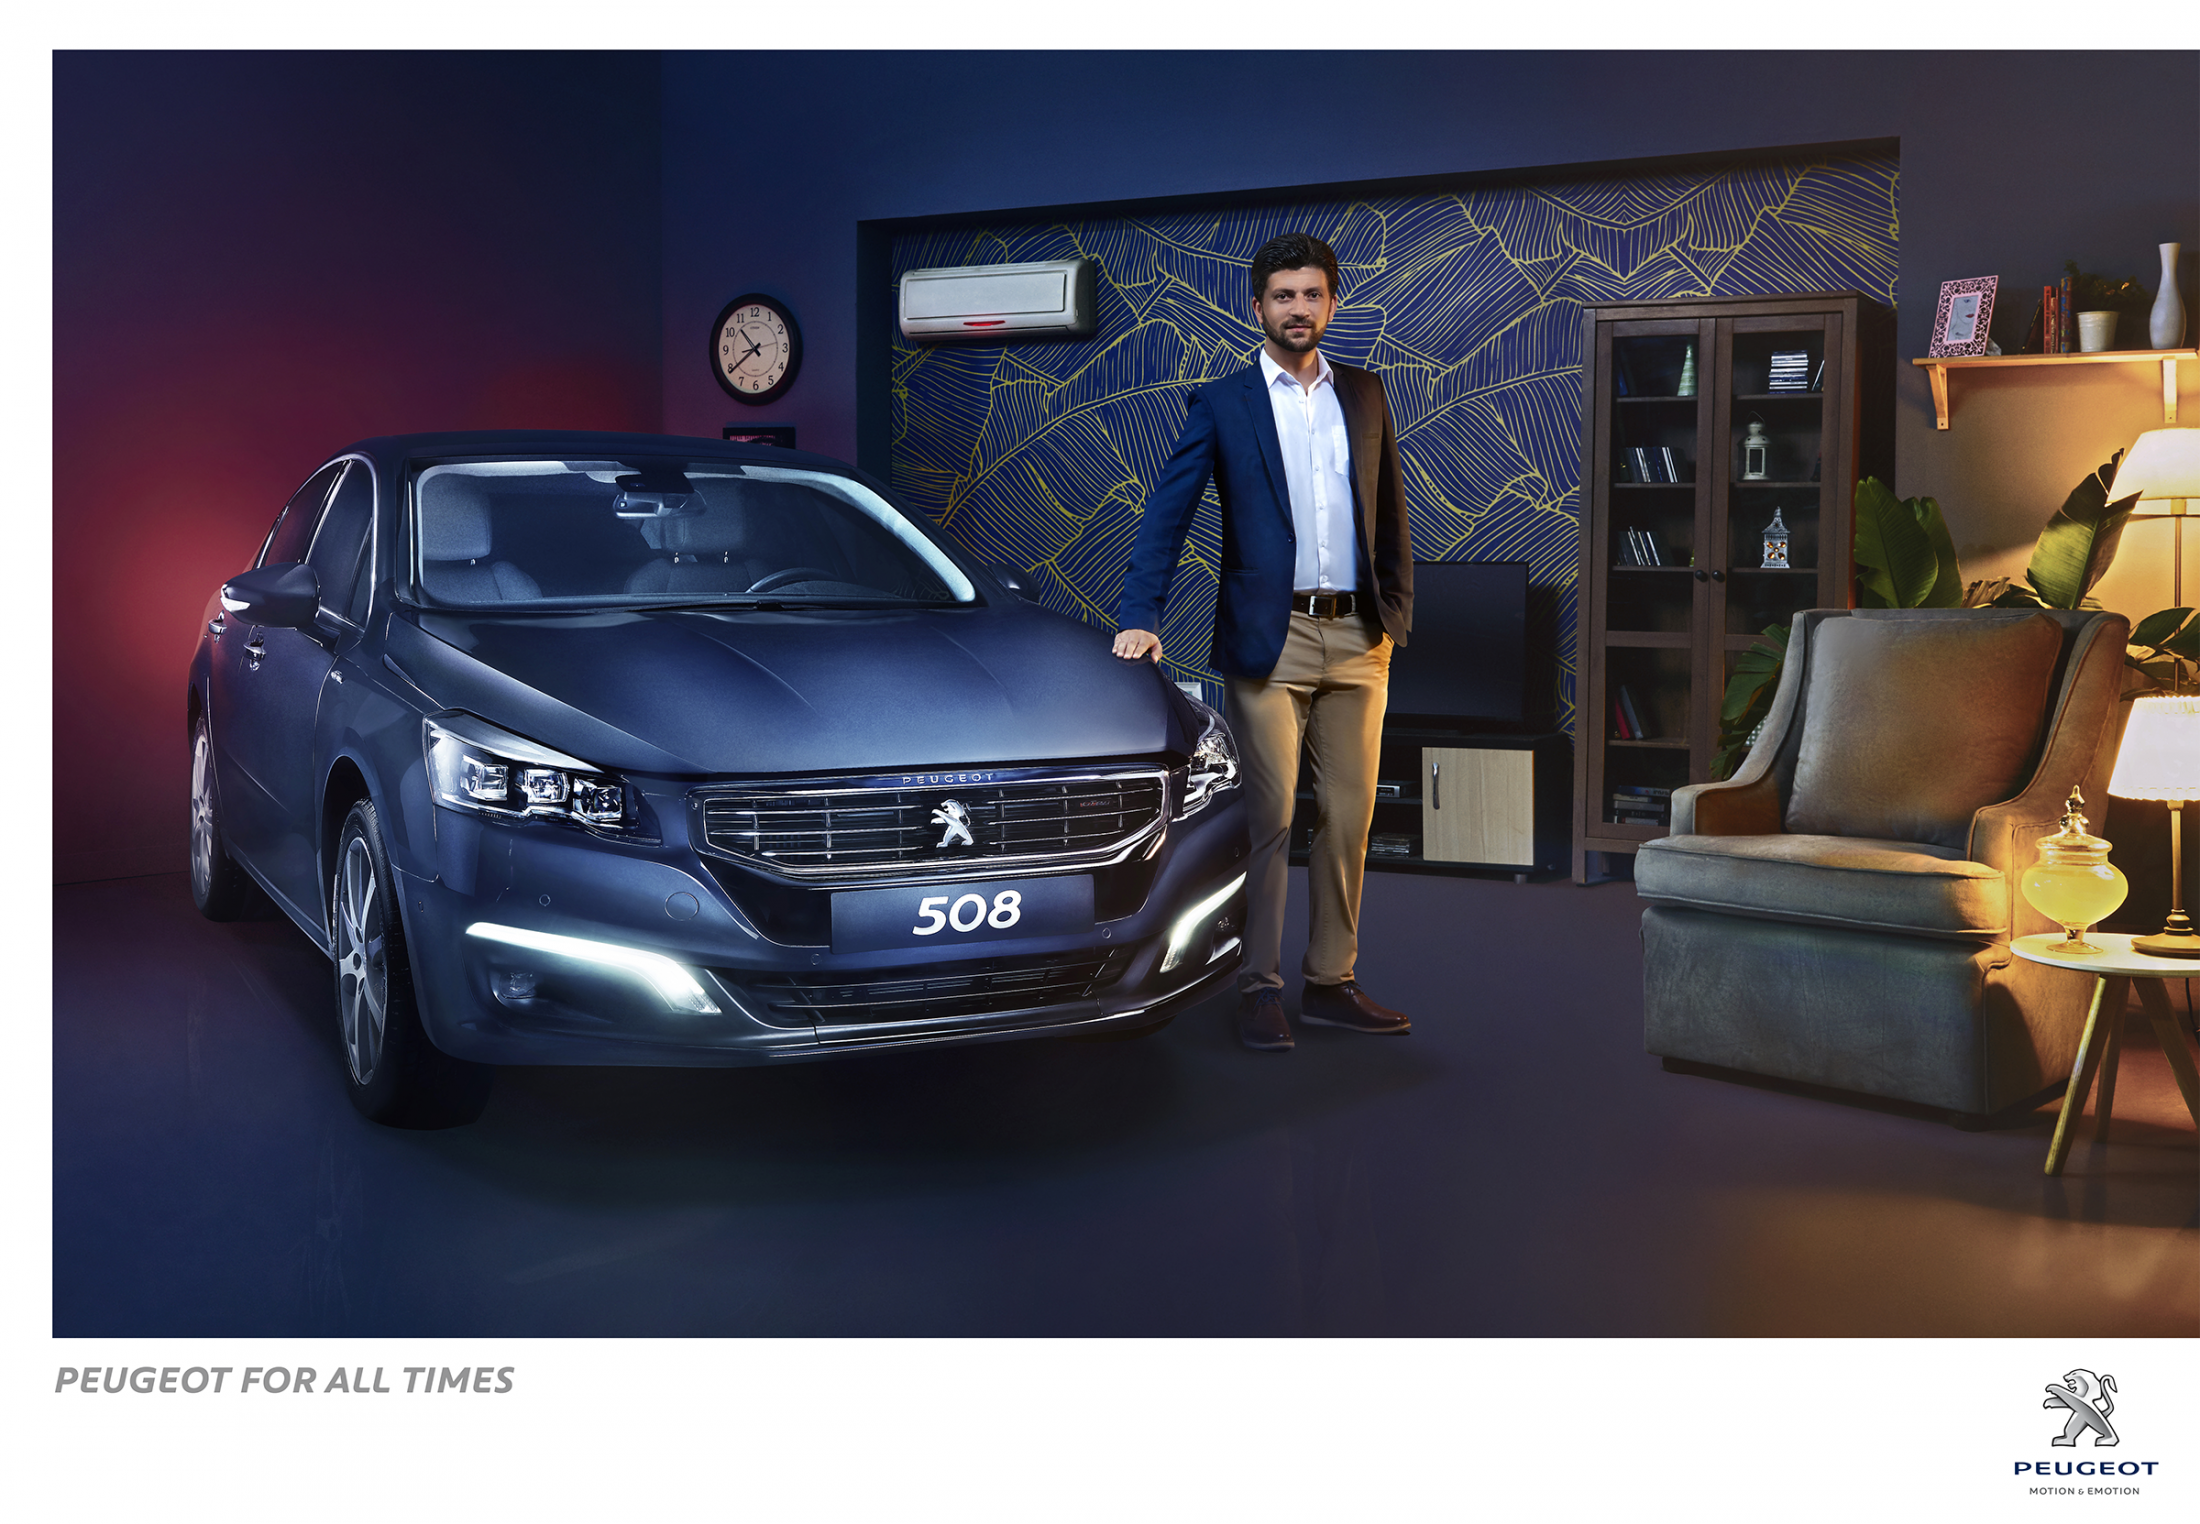 Peugeot Print Ad - Peugeot for all times, 3